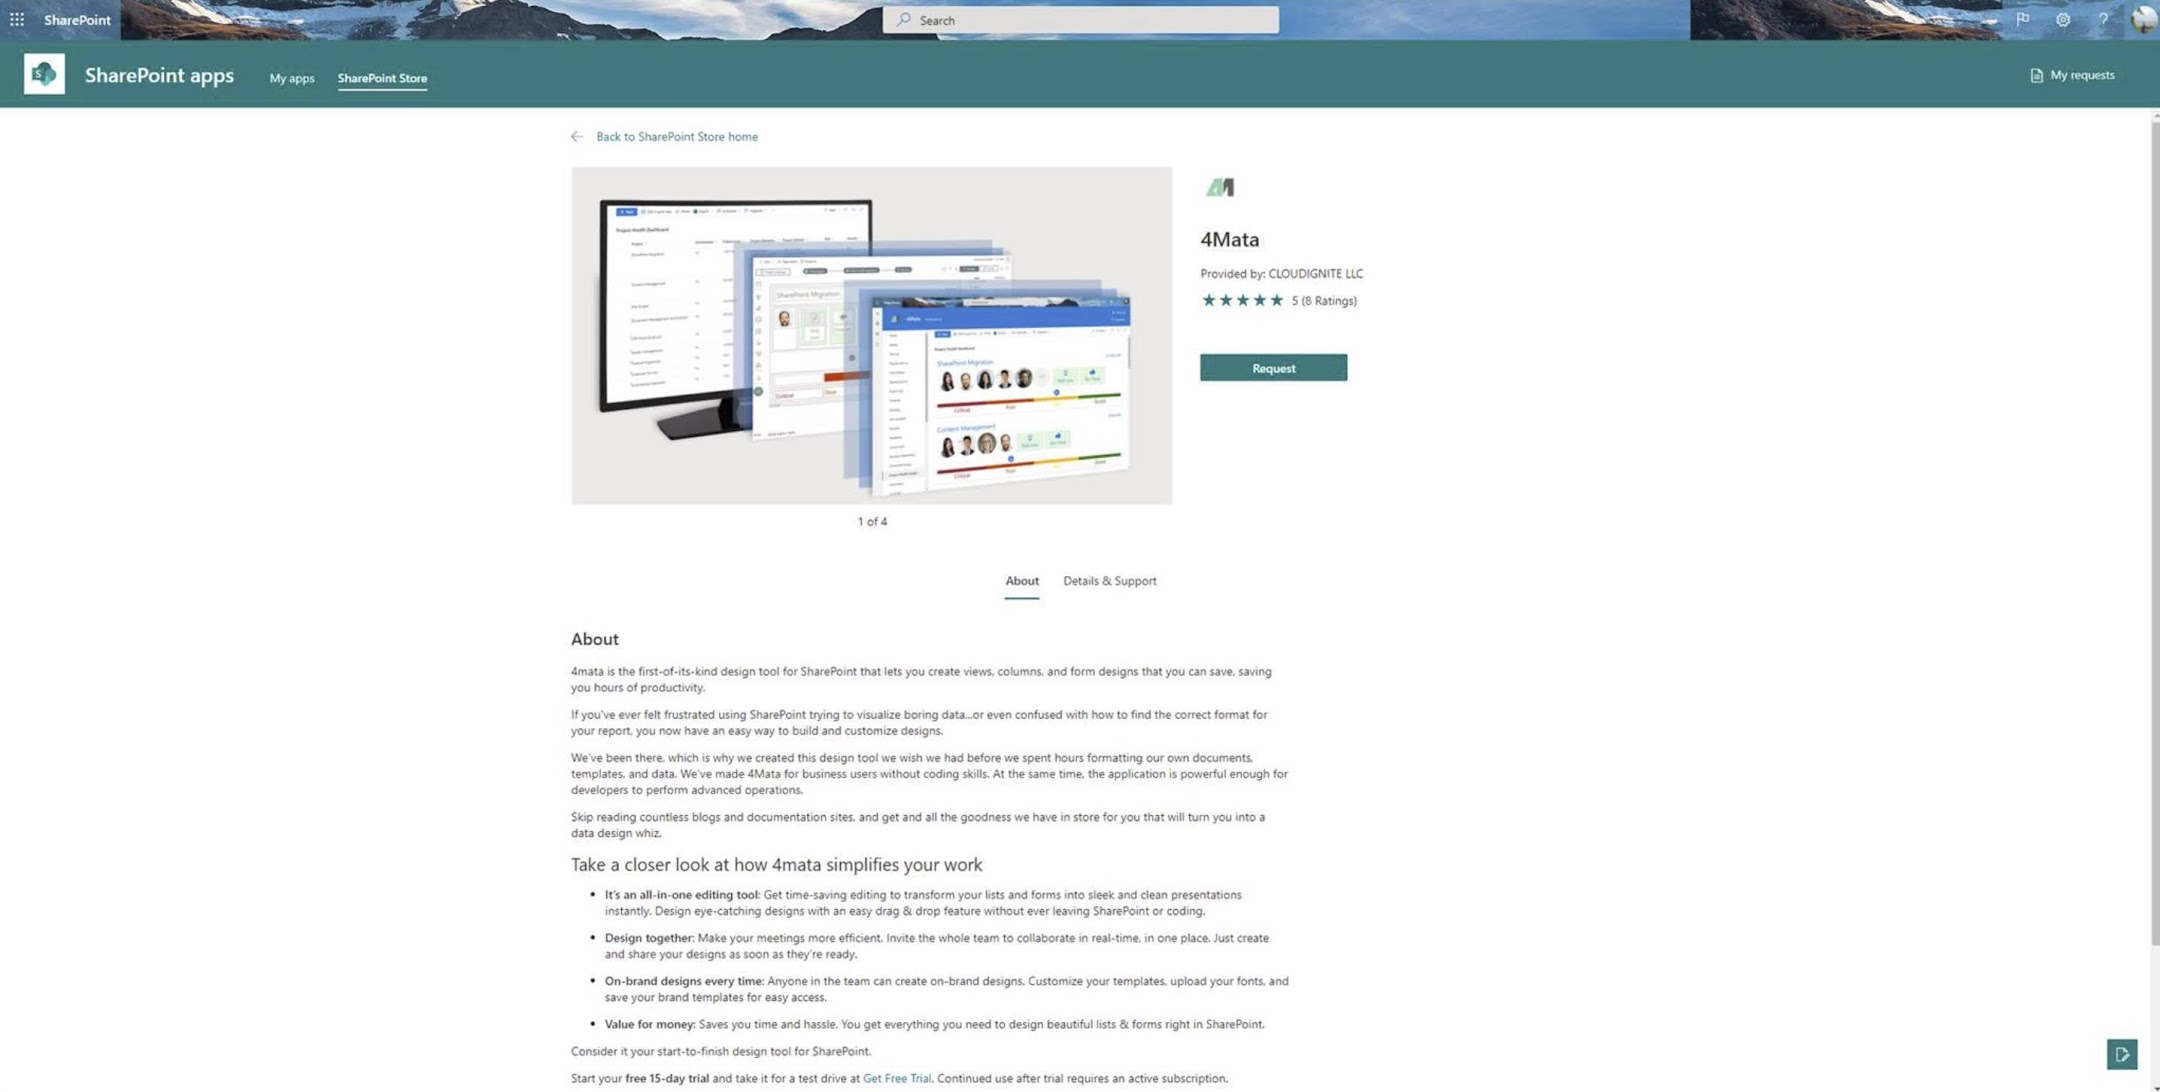 SharePoint App Details page